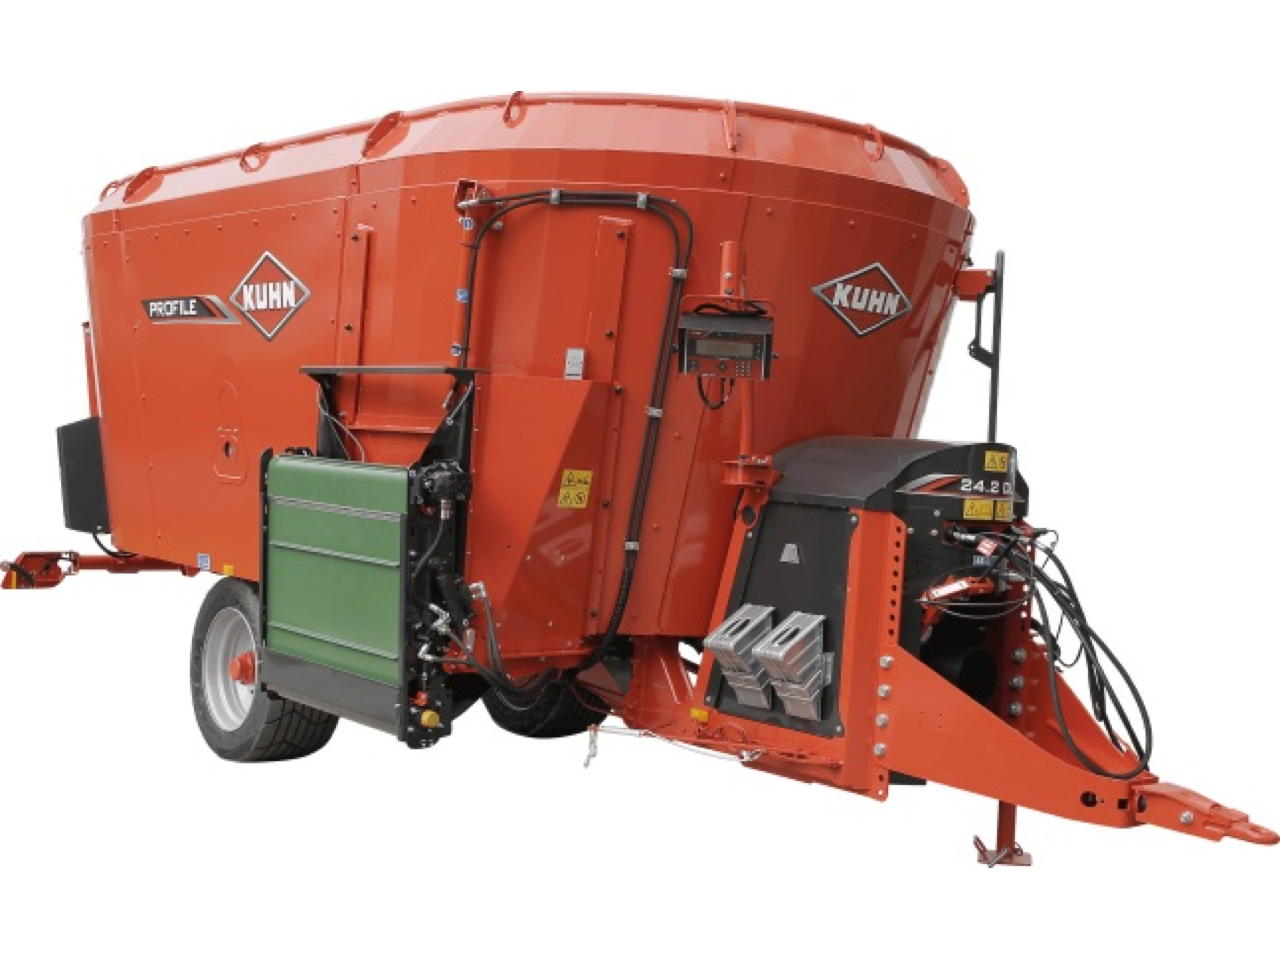 Kuhn Profile 2 DL Profile 18.2 DL